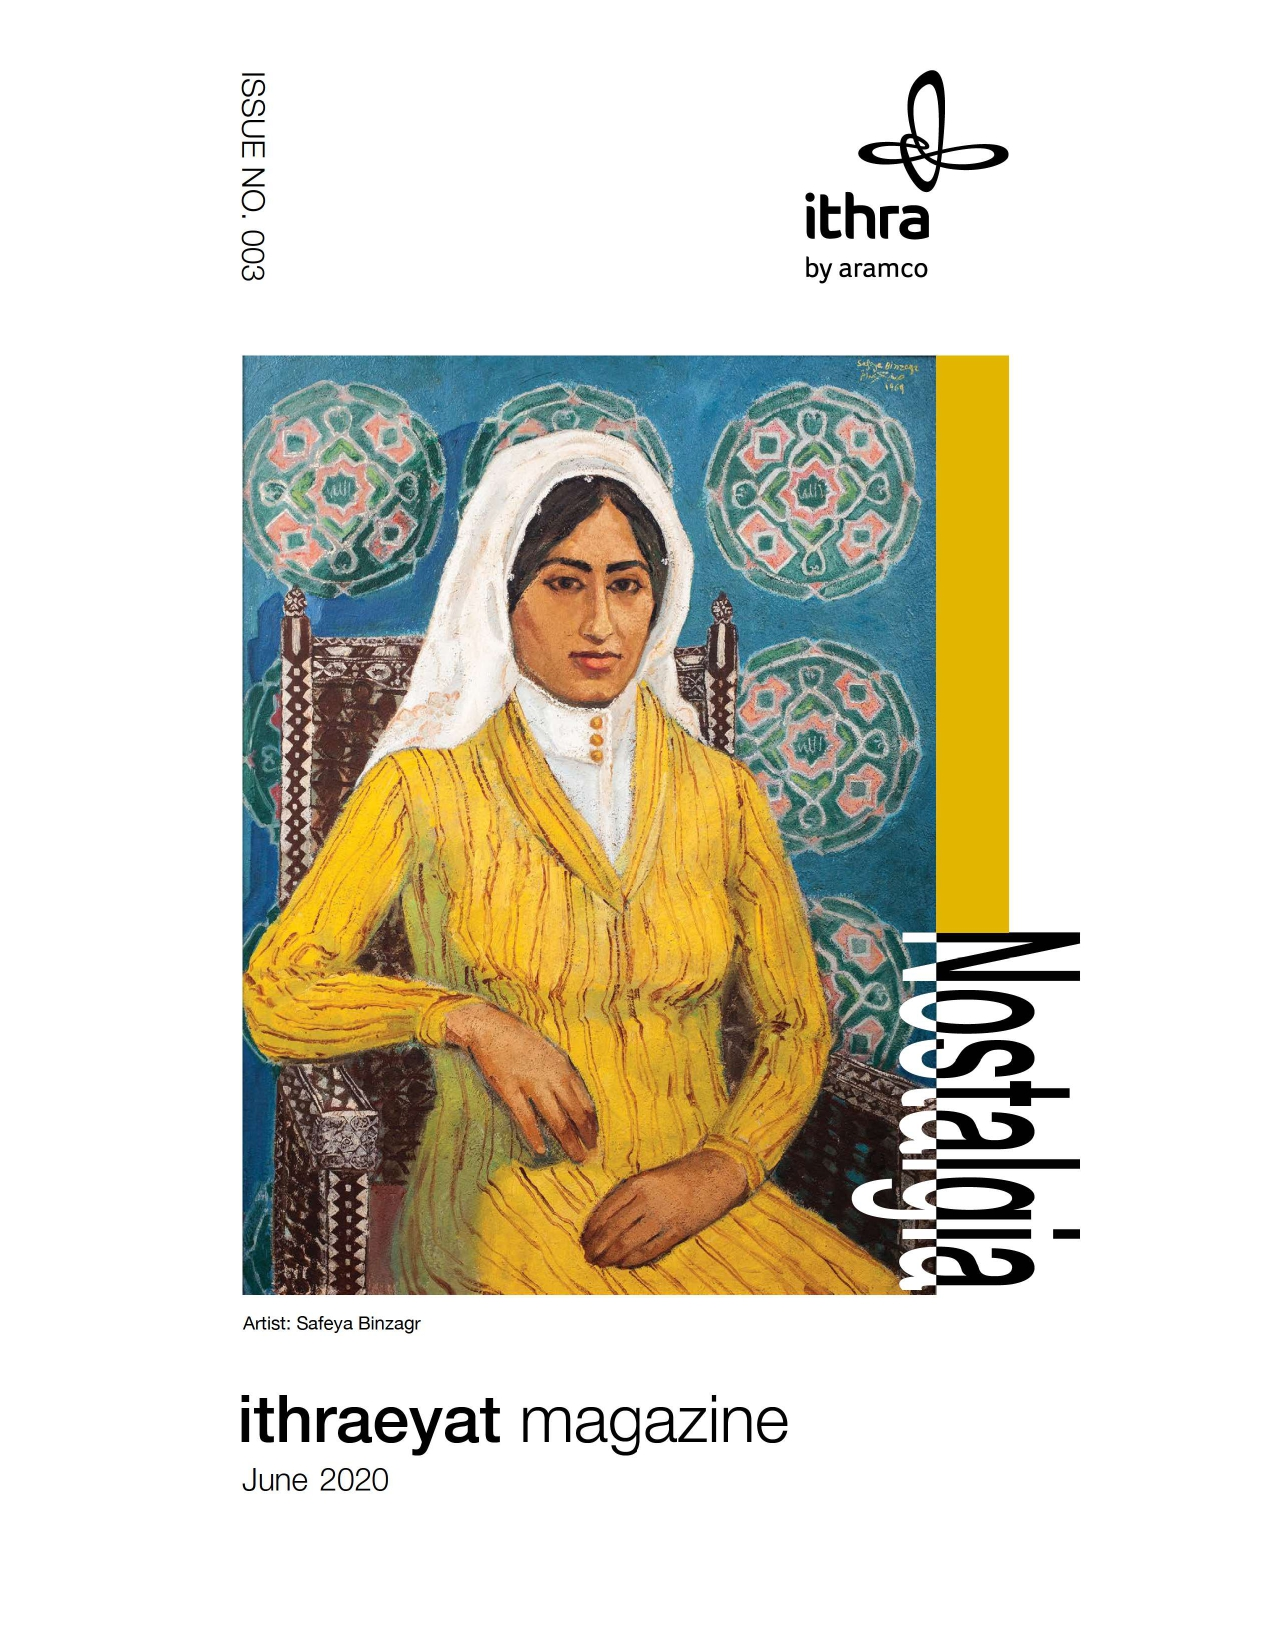 Ithraeyat Magazine June 2020